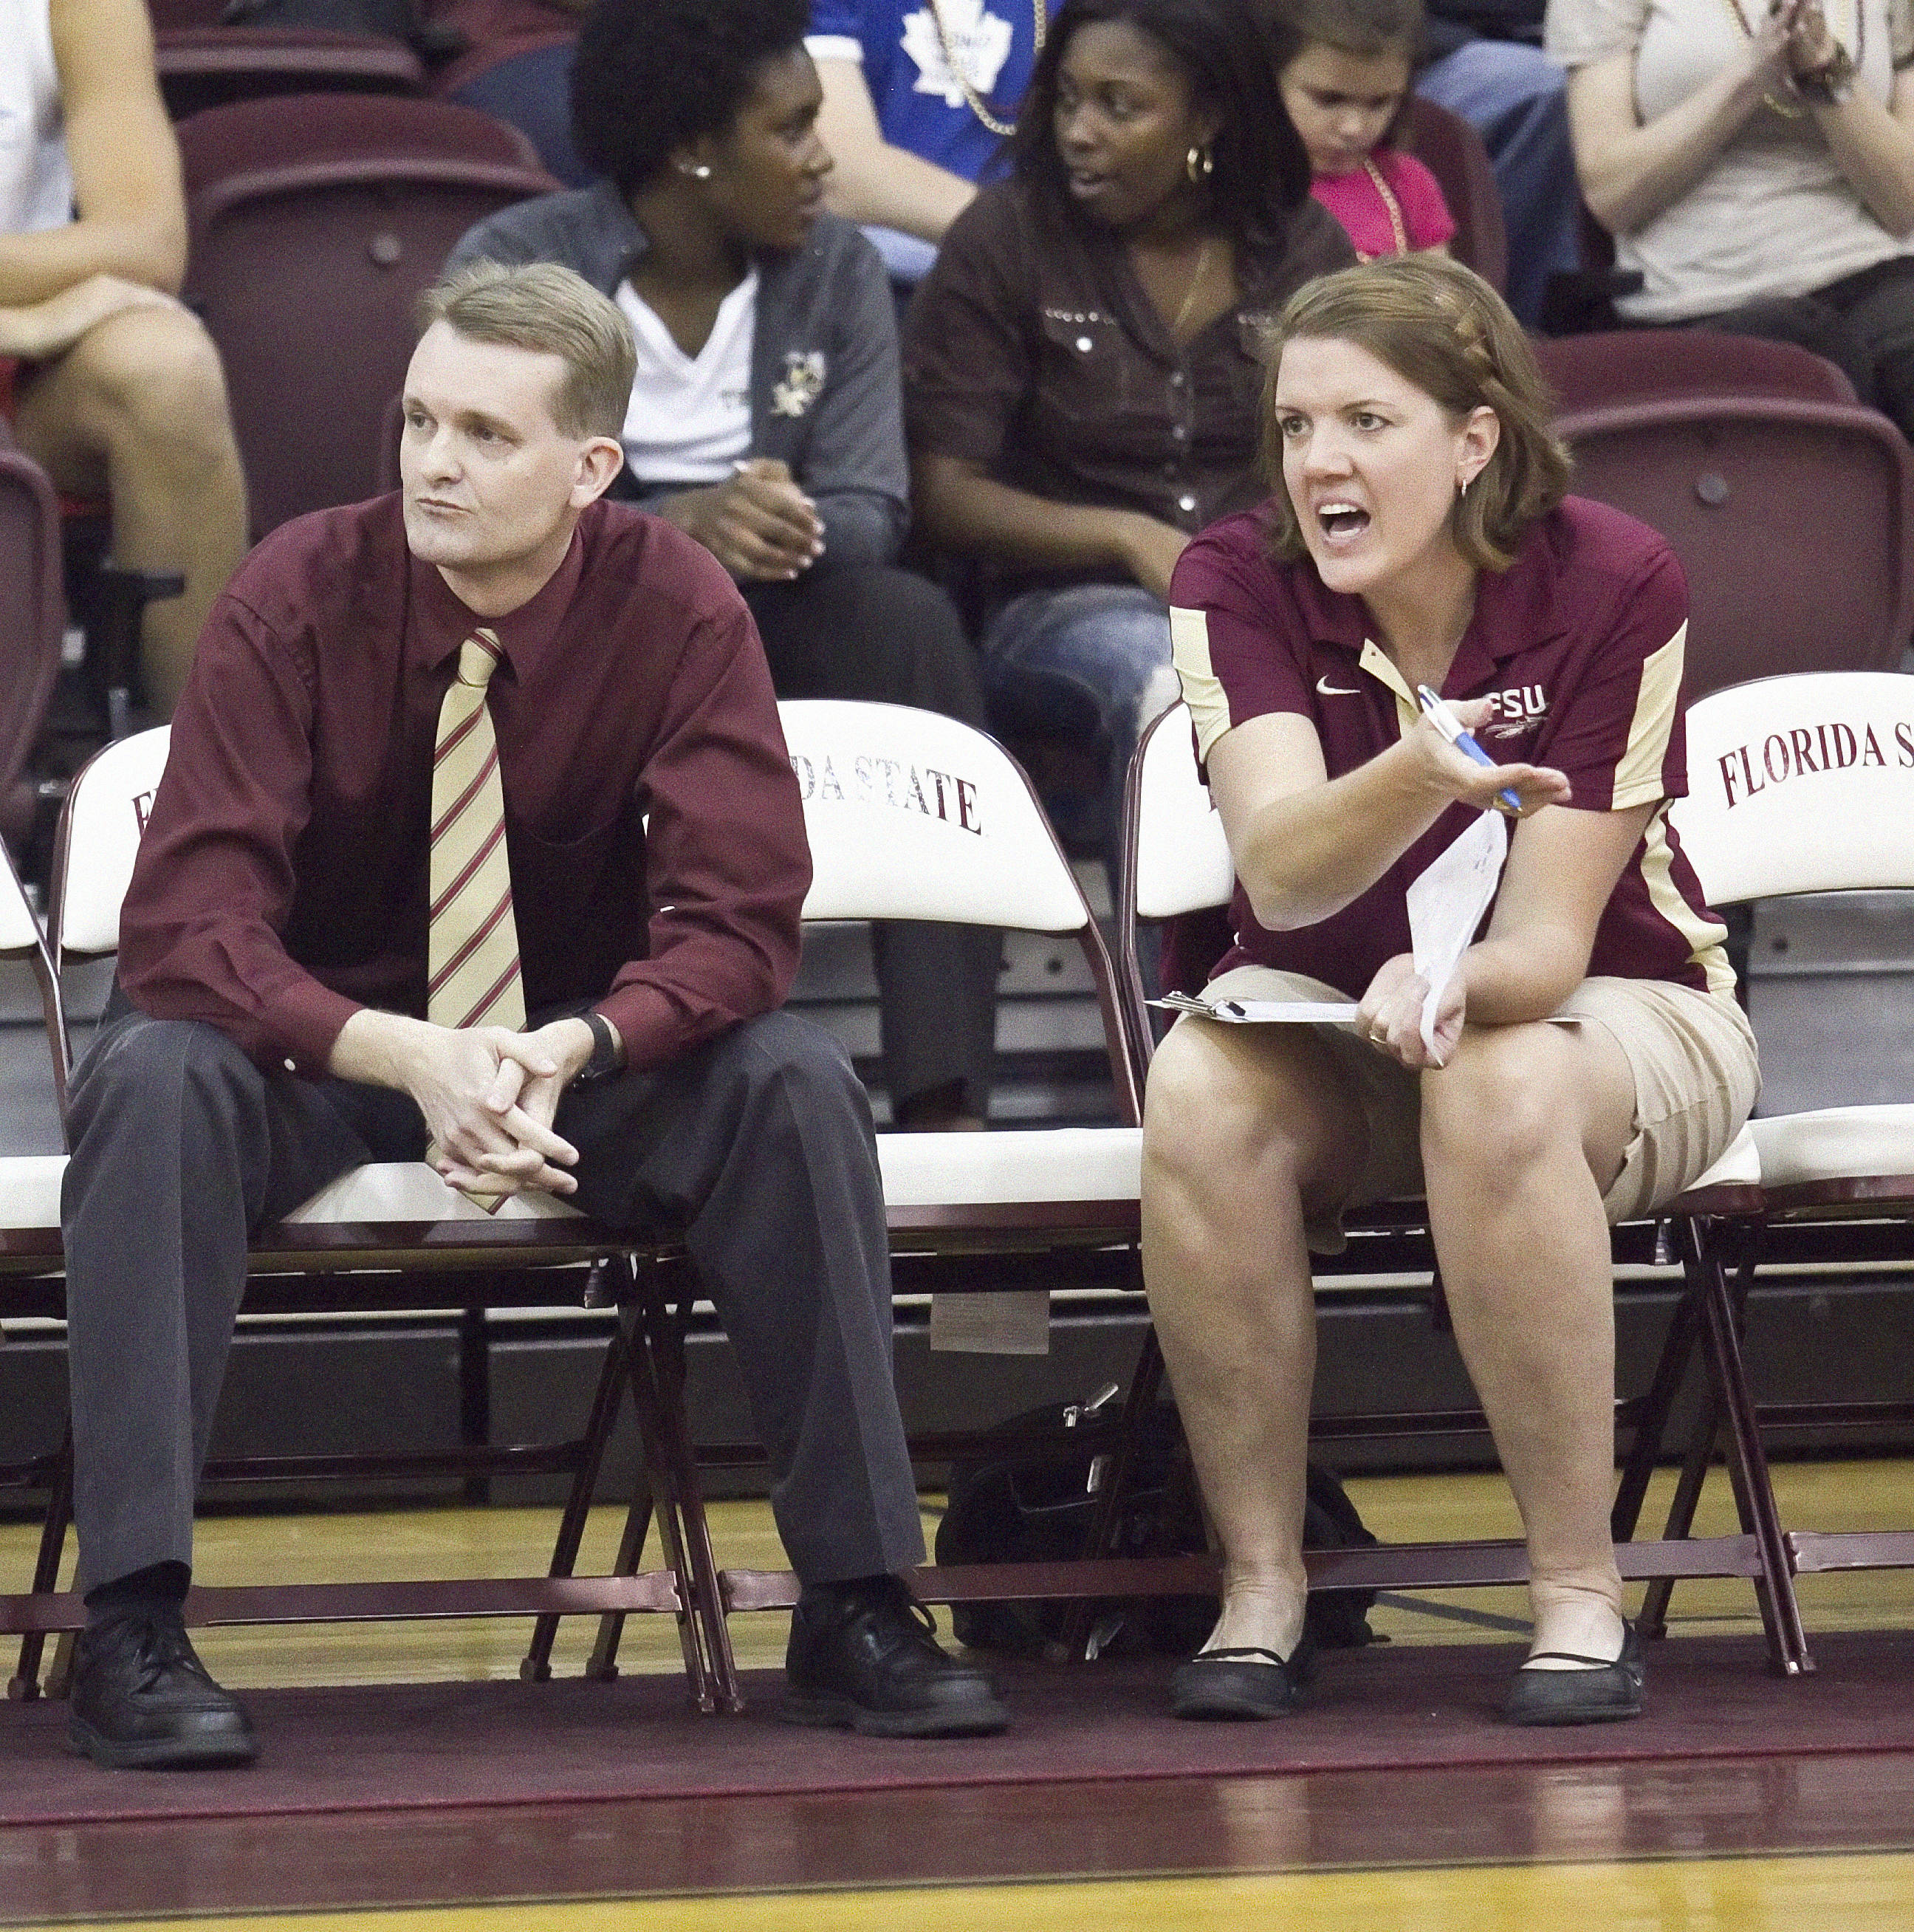 Head Coach Chris Poole, Associate Head Coach Holly Watts FSU vs GT 10/14/1111